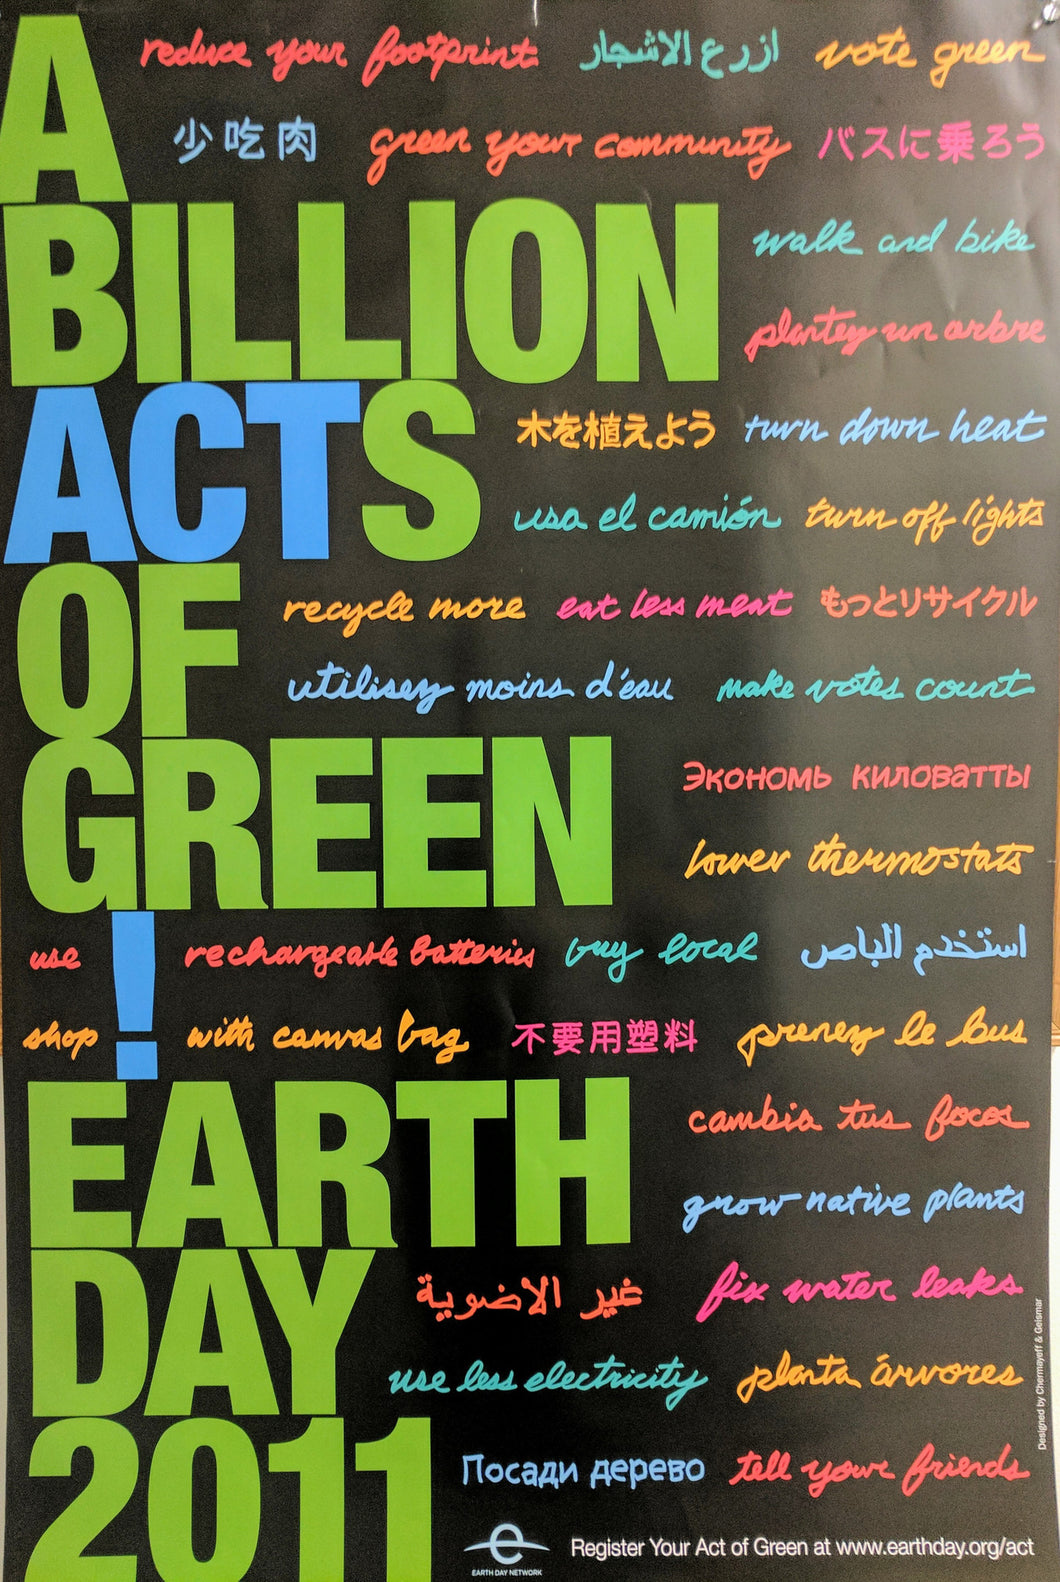 Billion Acts of Green Poster